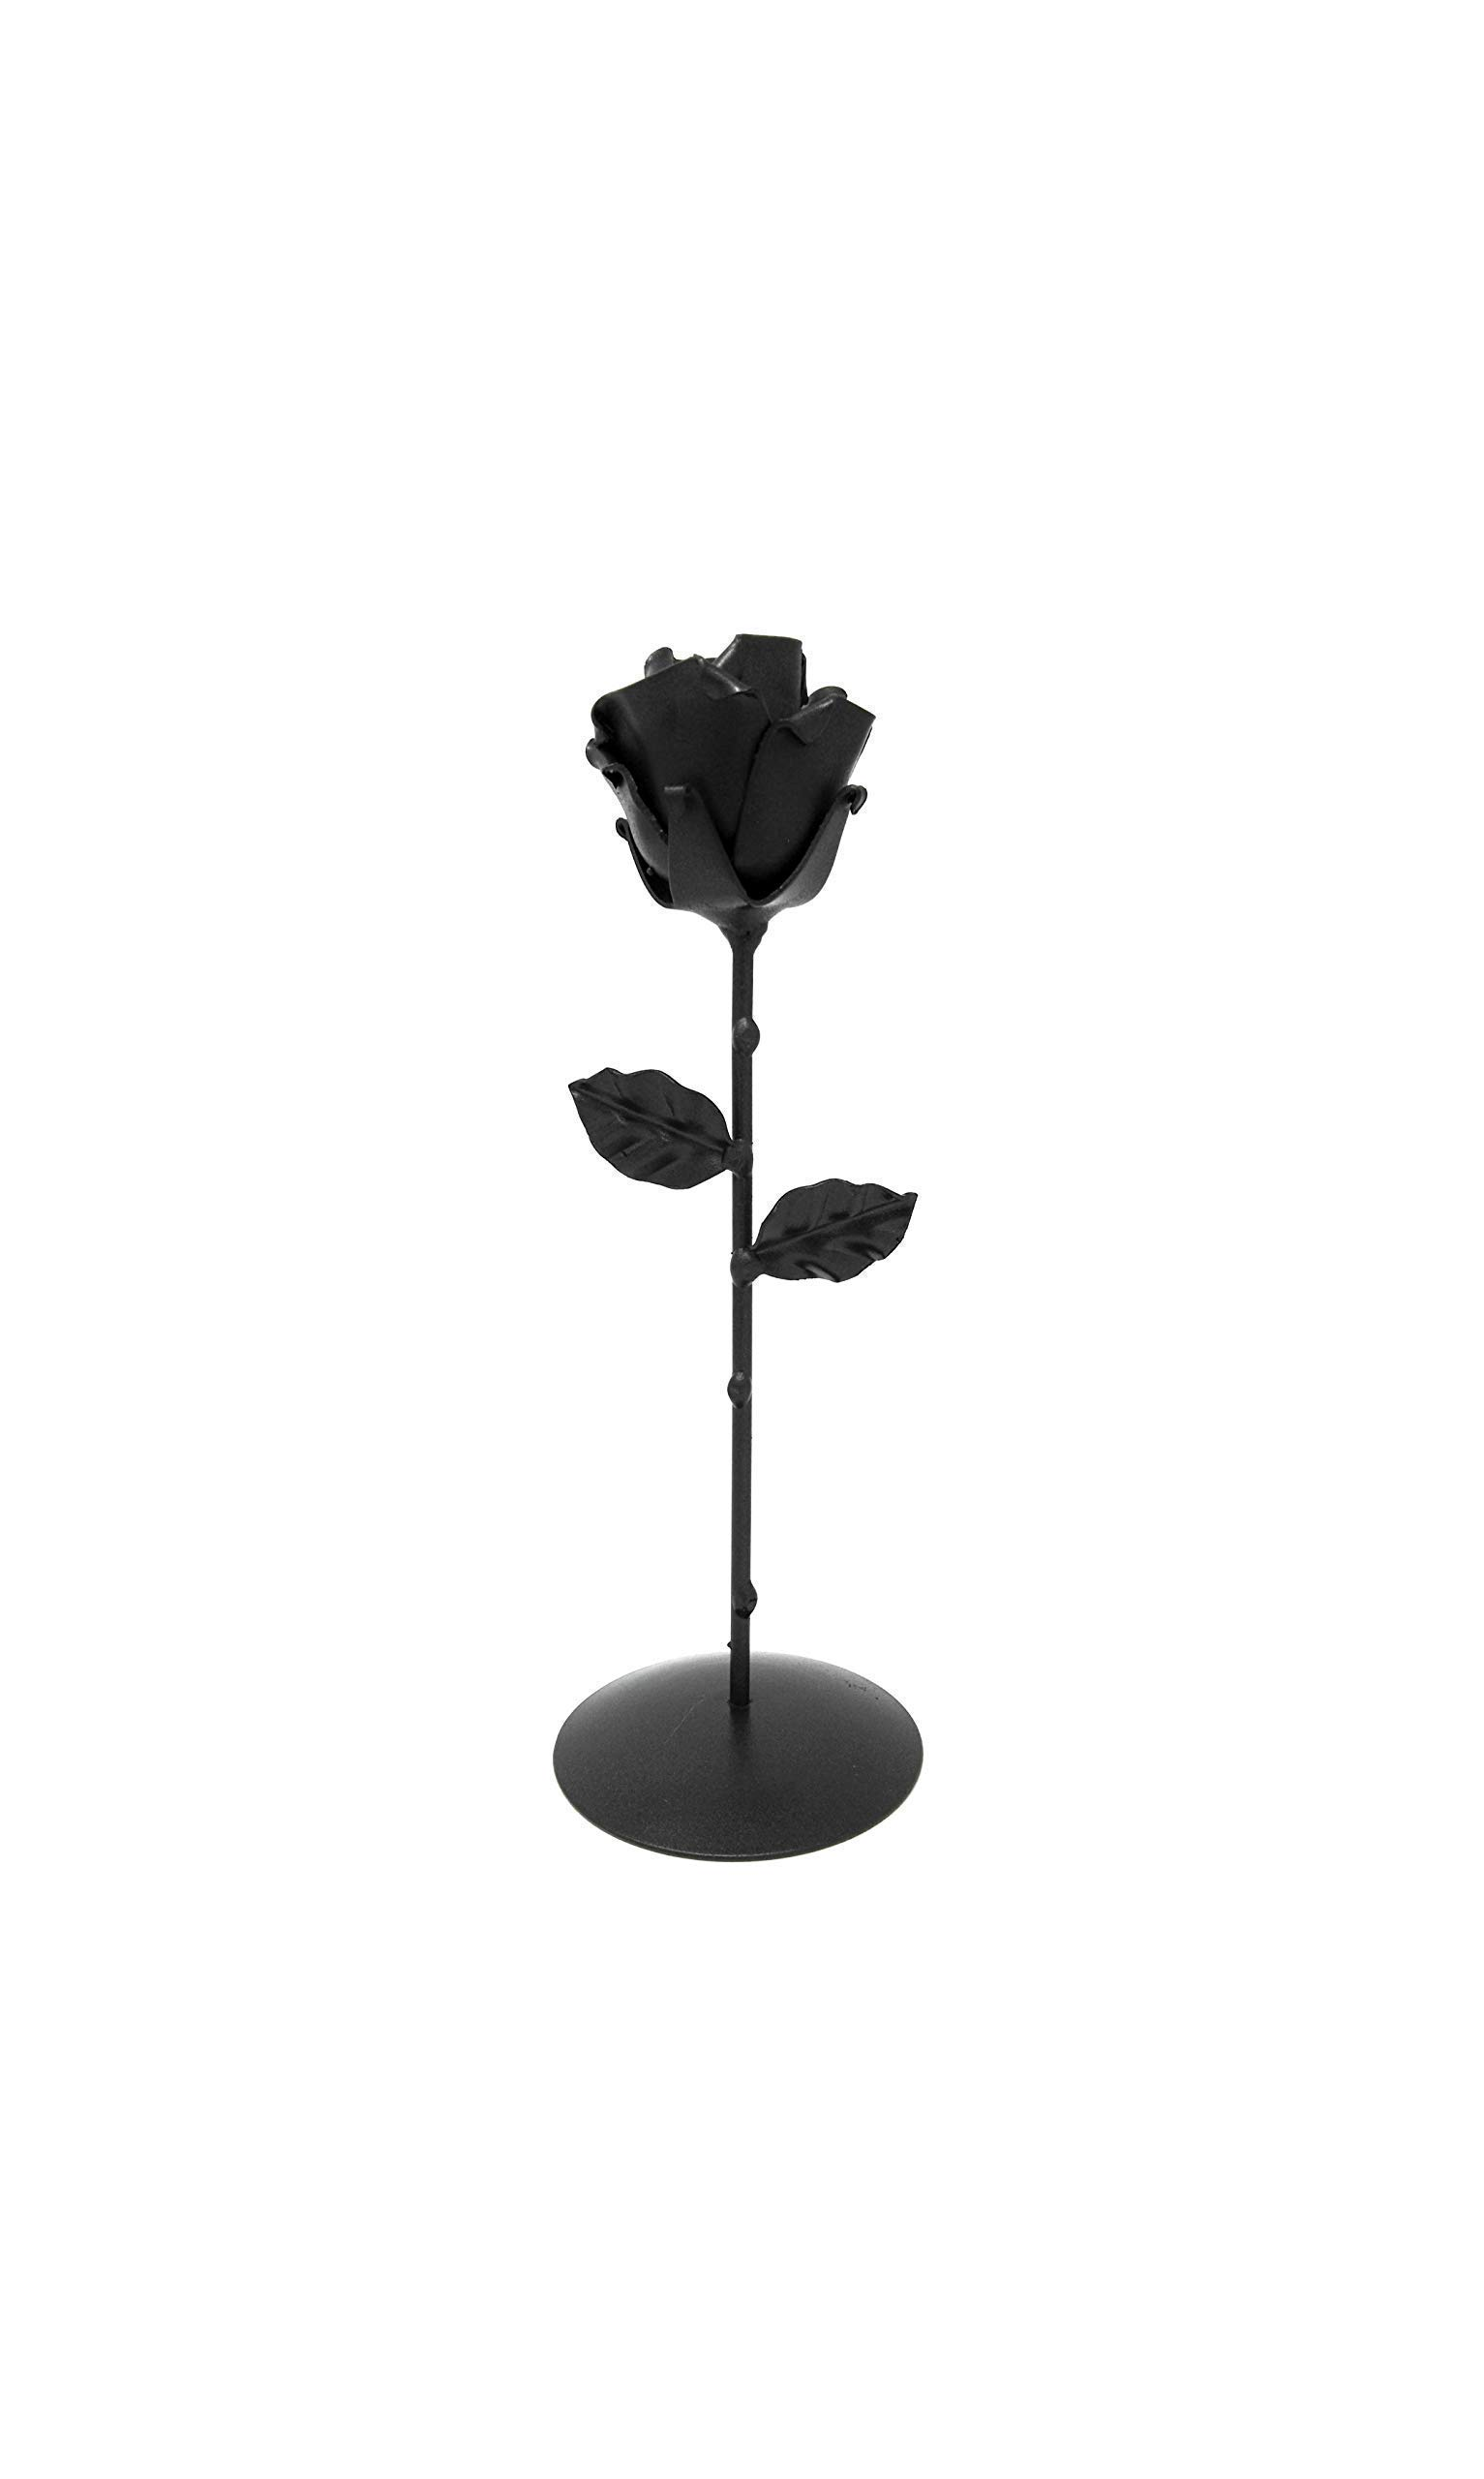 -Eternal-Rose-Hand-Forged-Wrought-Iron-Black-with-BaseIdeal-gift-Valentines-Day-Girlfriend-Mothers-Day-Couple-Birthday-Christmas-Wedding-Day-Anniversary-Decor